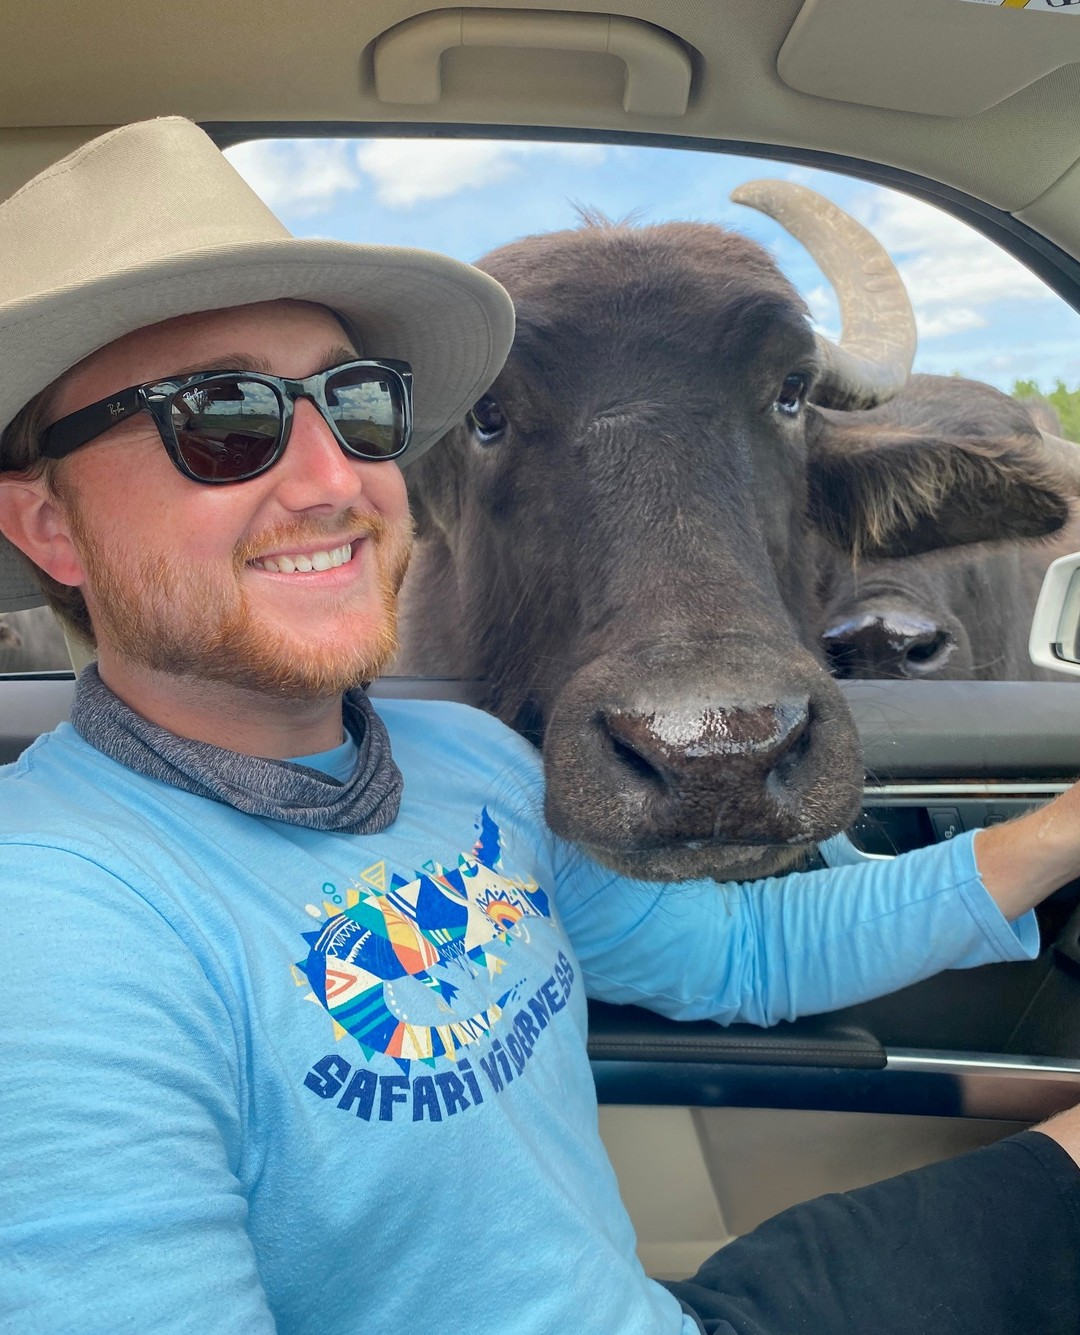 What is as big as a water buffalo, but weighs nothing?🤔⬇⬇⬇Its shadow!😜.It might be #InternationalJokeDay, but the new drive-thru safaris at @SafariWilderness are NO joke! See the exotic species of wildlife that call this 260-acre ranch home, from the comfort of your own vehicle. You can even feed them!.Reservations are required. Click the link in our bio or call 813-382-2120 to book a safari....#SafariWilderness #SafariWild #SafariWildernessRanch #YesSafariWild #CentralFL #CentralFlorida #VisitCentralFL #LoveFL #Wildlife #DriveThruSafari #Safari #JokeDay #Buffalo #WaterBuffalo